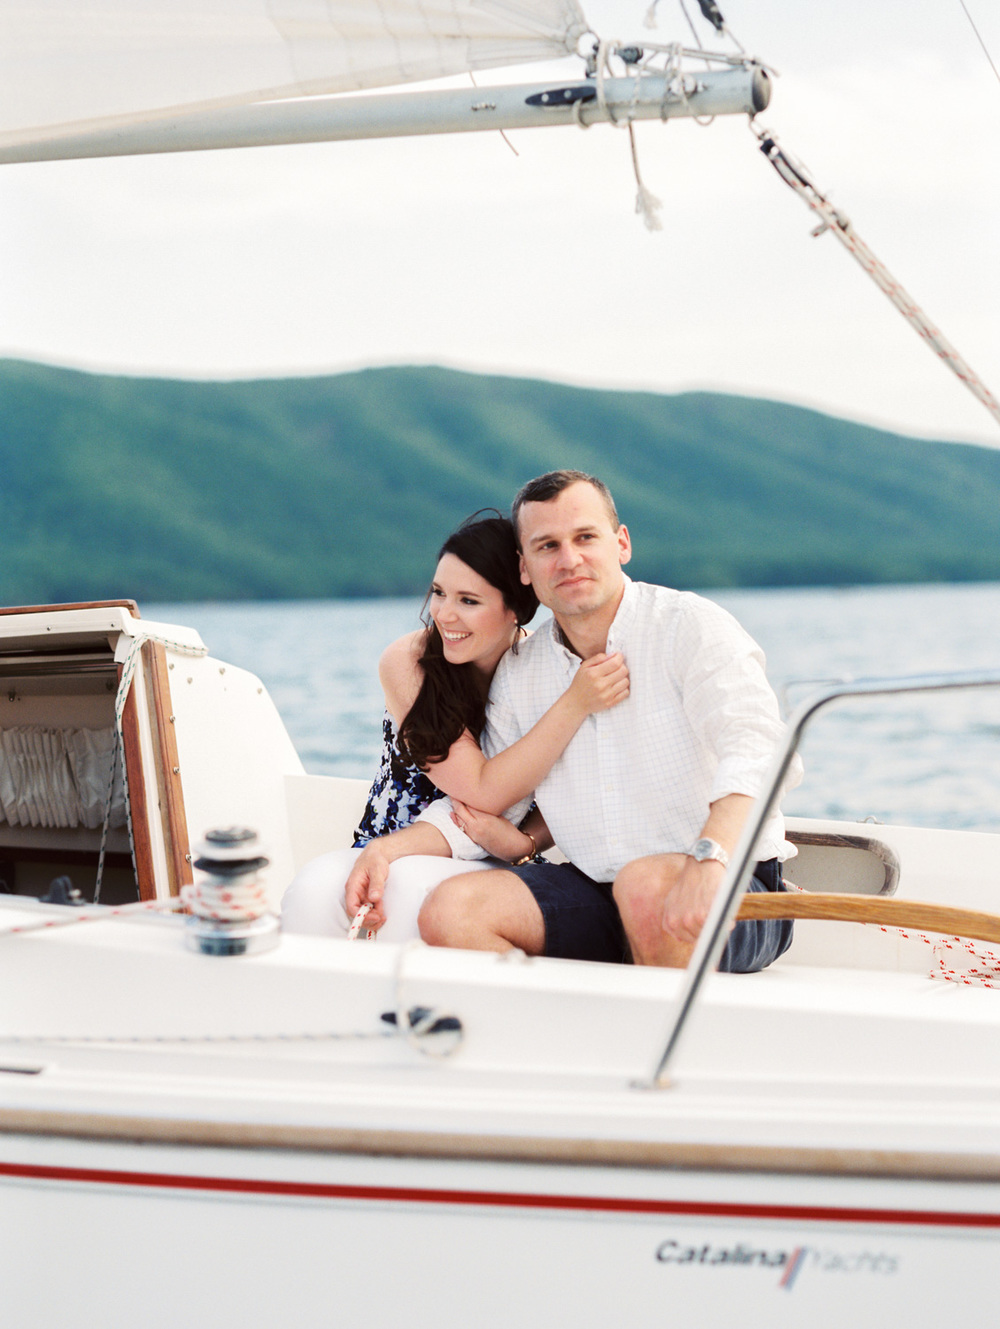 Megan & Court | Sailboat Engagement Photos | Smith Mountain Lake, Virginia | Kelsey & Nate | kelseyandnate.com | Nautical Photography